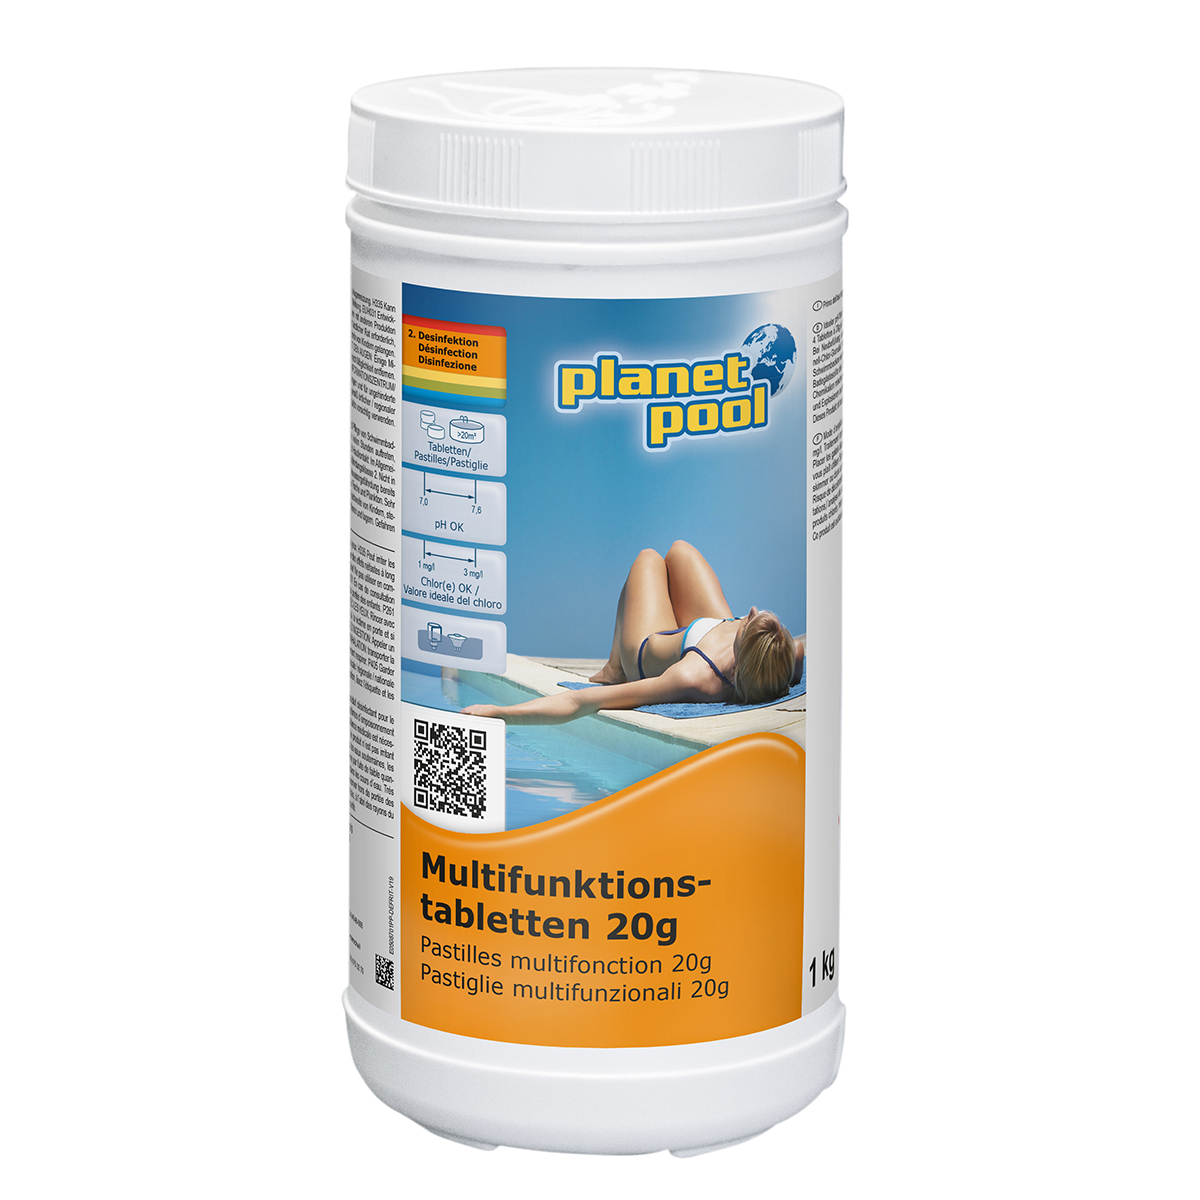 PLANET POOL Multifunktionstabletten 20 g 1 kg